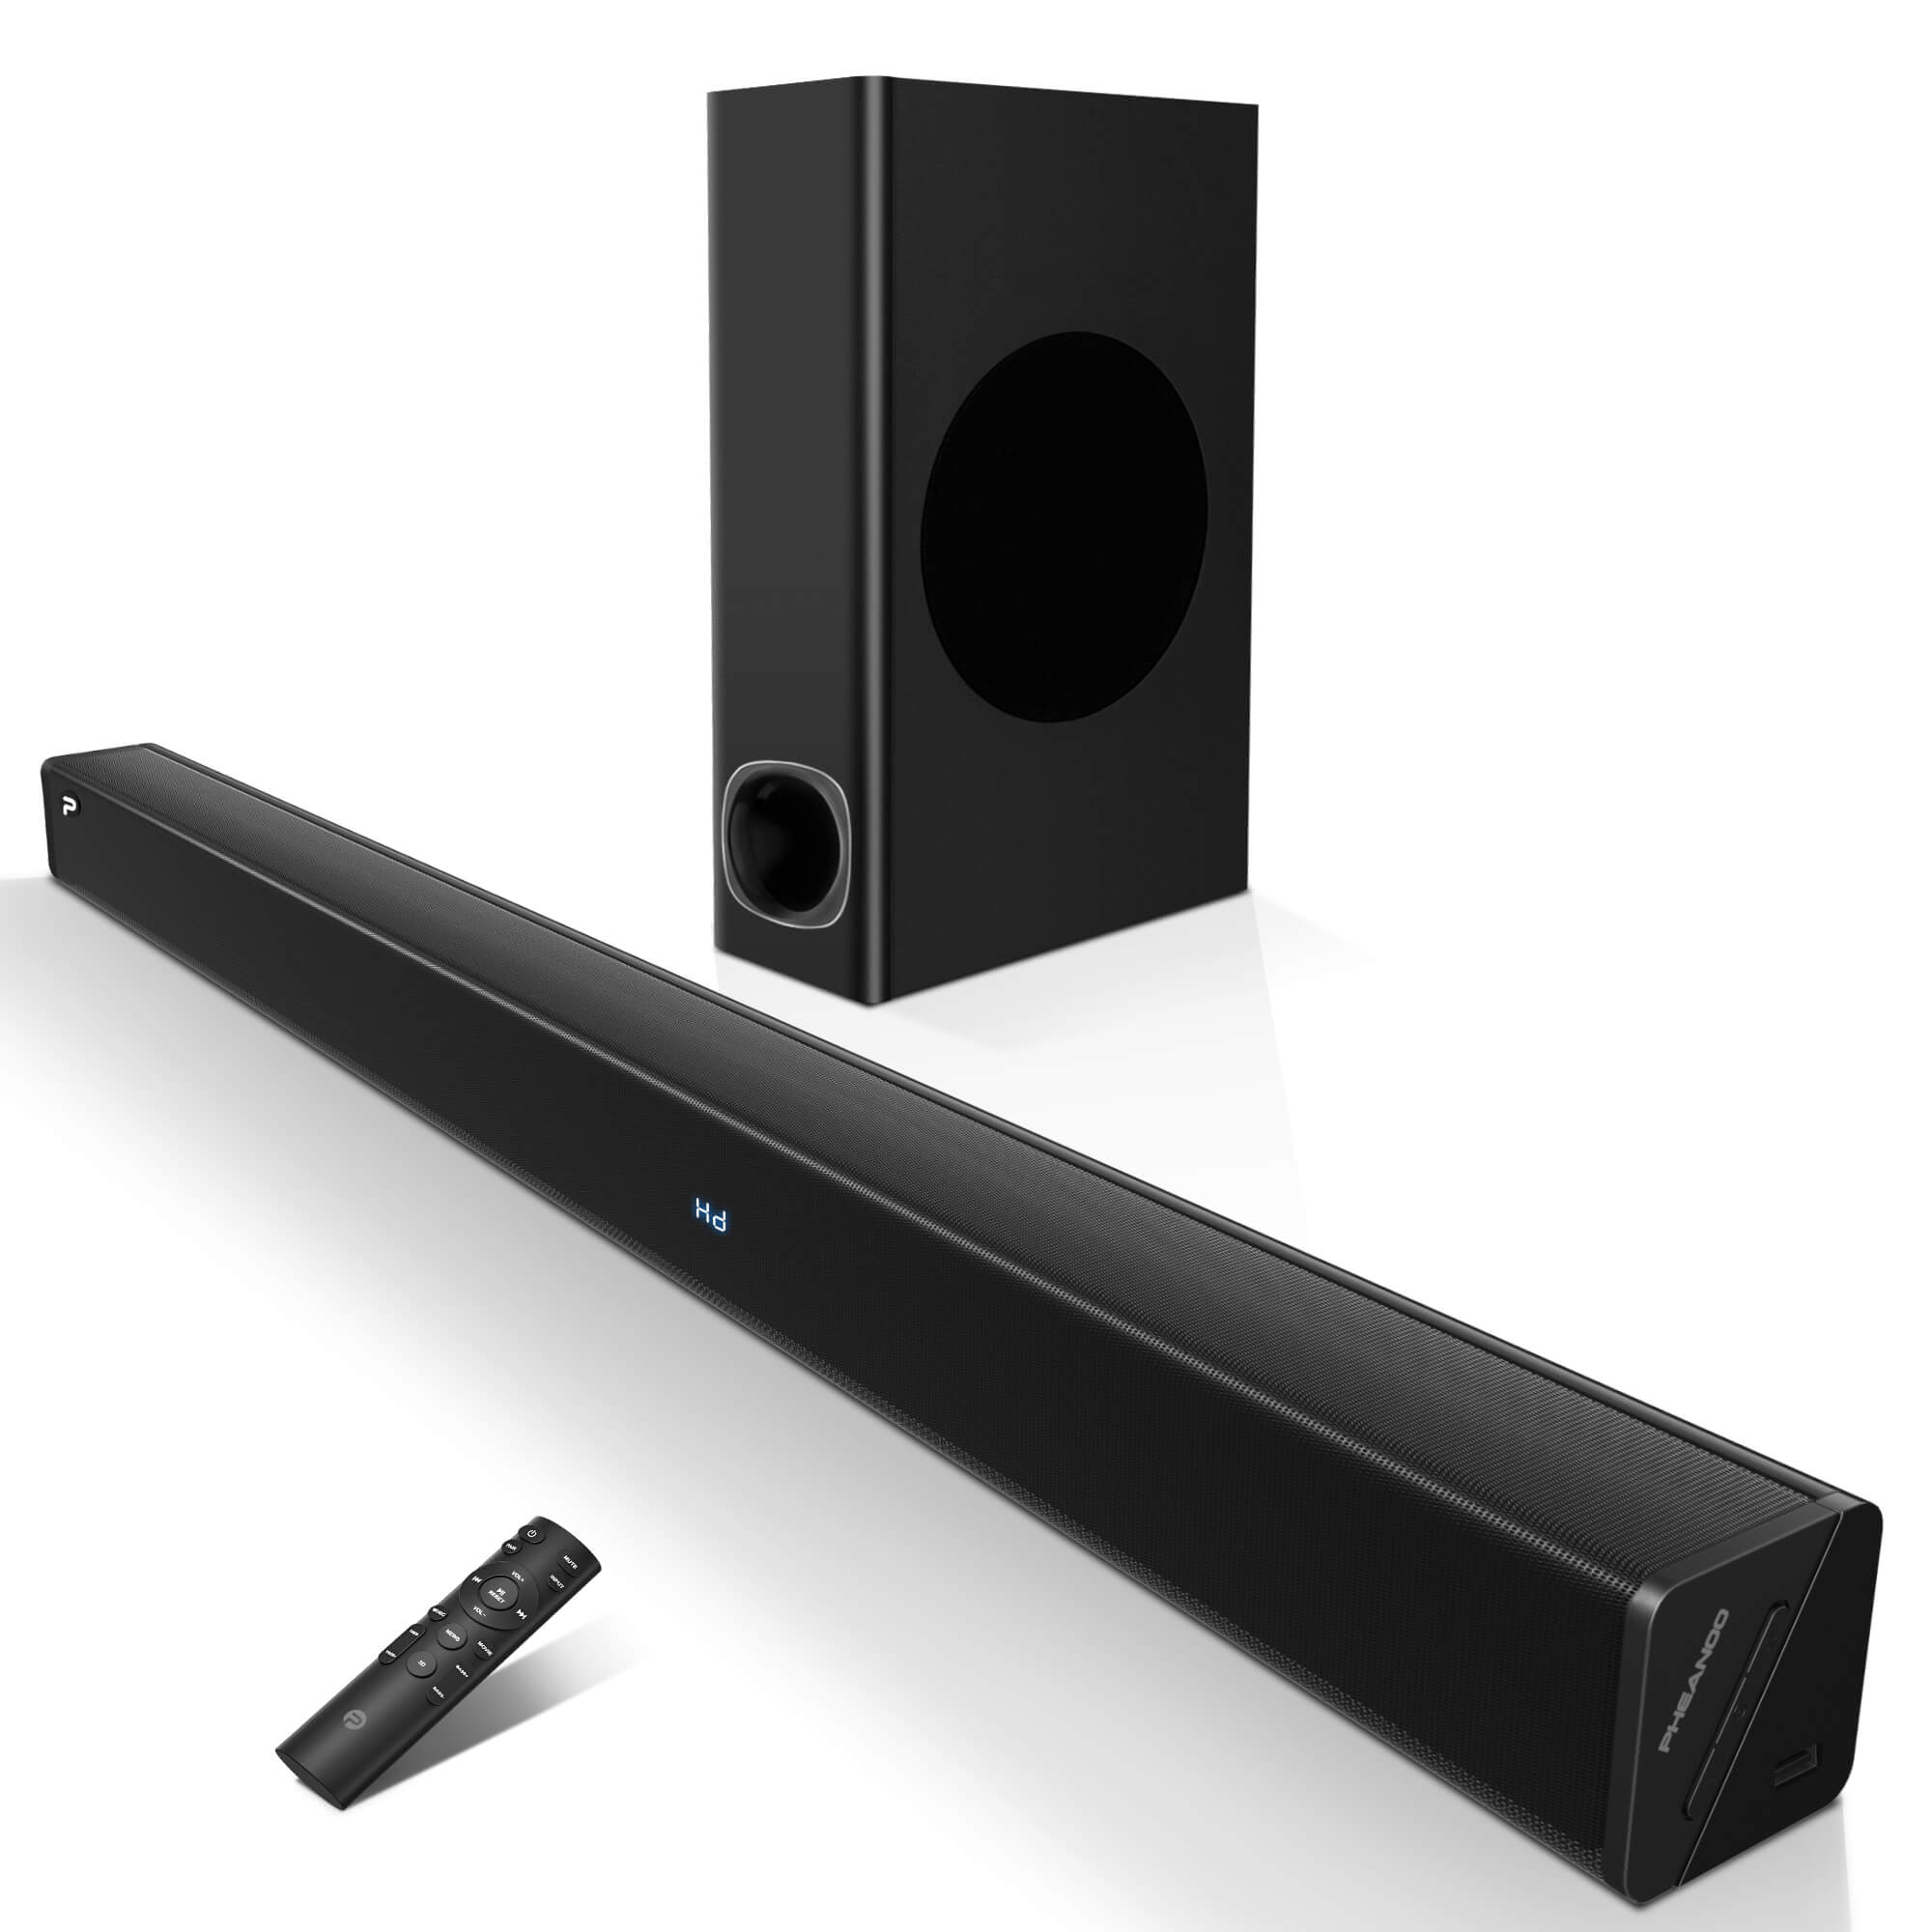 Pheanoo Audio Ltd Unveils Soundbar Systems With Subwoofer To Give Users The Incredible Listening And Watching Experience